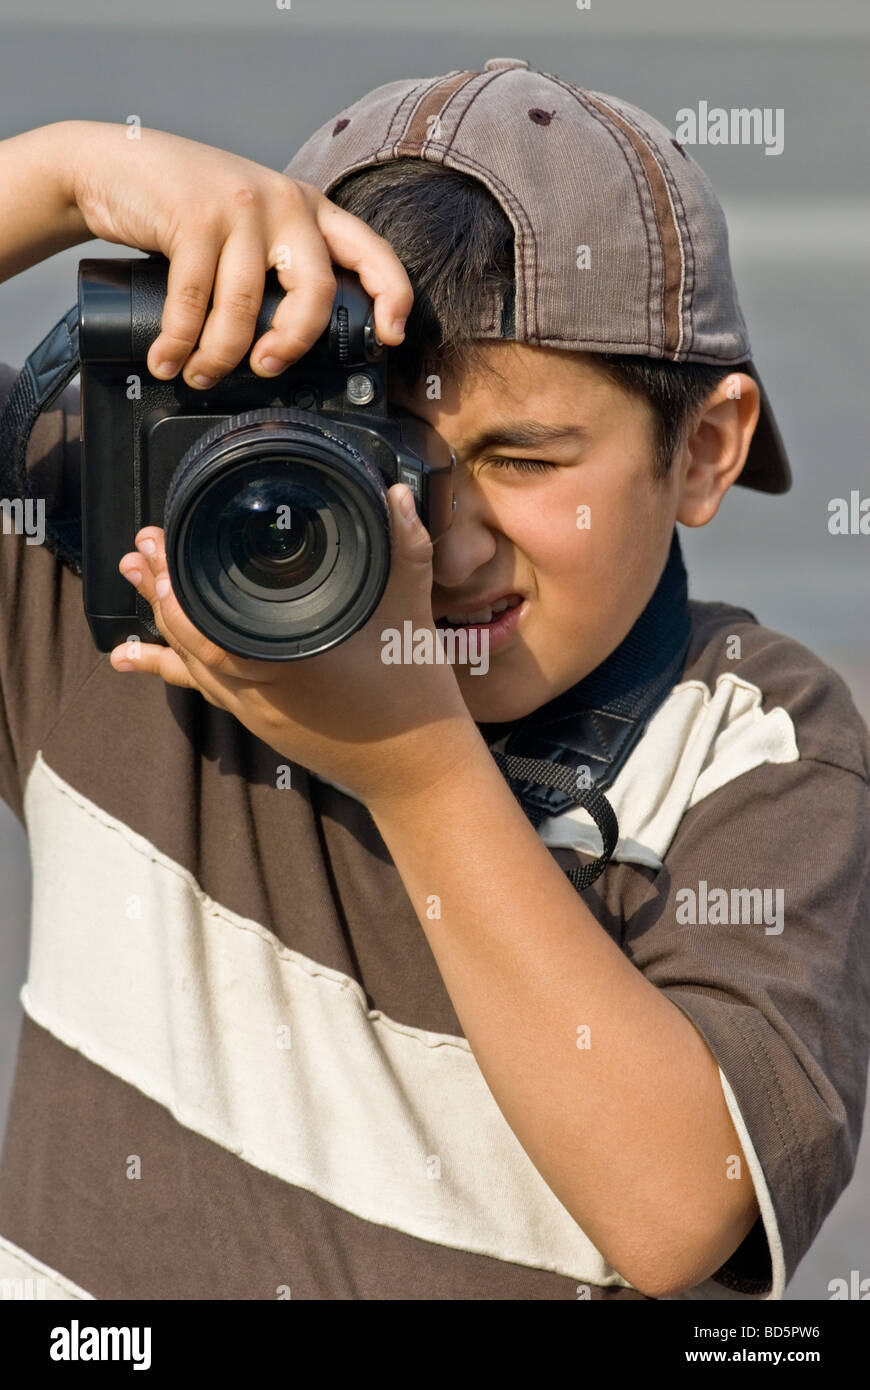 BOY IN HIS 10s TAKING PICTURE WITH PROFESSIONAL CAMERA - Stock Image